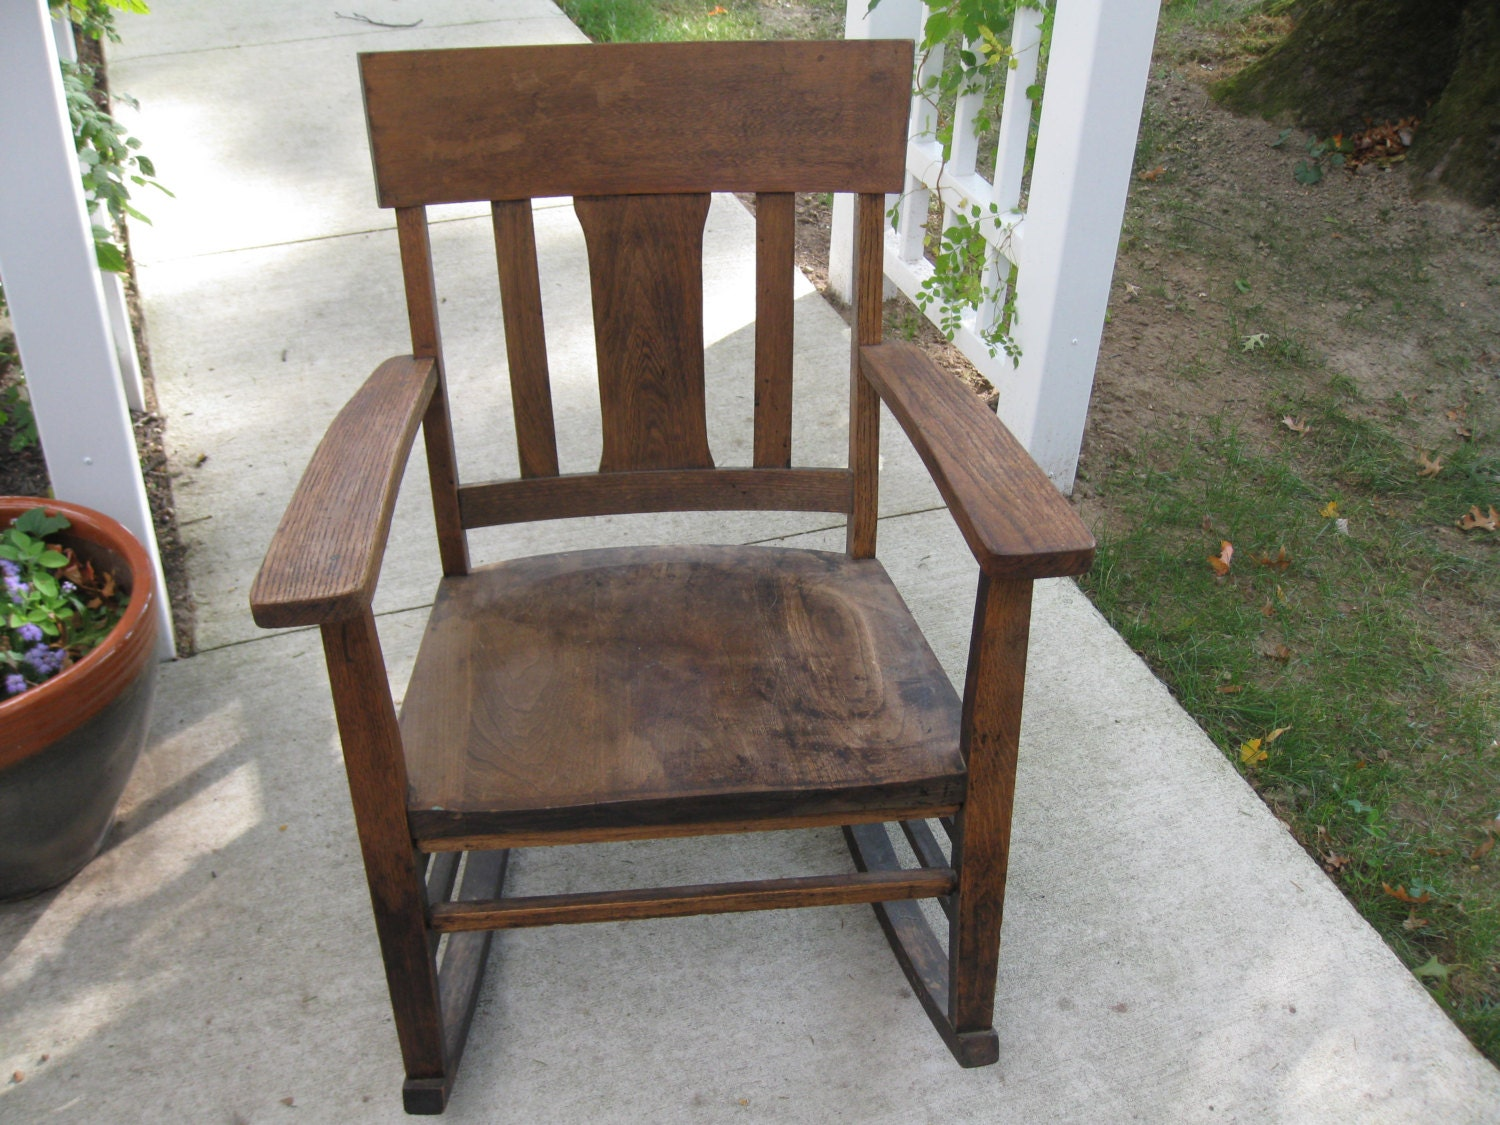 MURPHY CHAIR COMPANY No. 9673 Late 1800u0027s To Early 1900u0027s Oak Rocking Chair Mission Oak Style Local Pick Up Due To Size & MURPHY CHAIR COMPANY No. 9673 Late 1800u0027s To Early 1900u0027s Oak ...